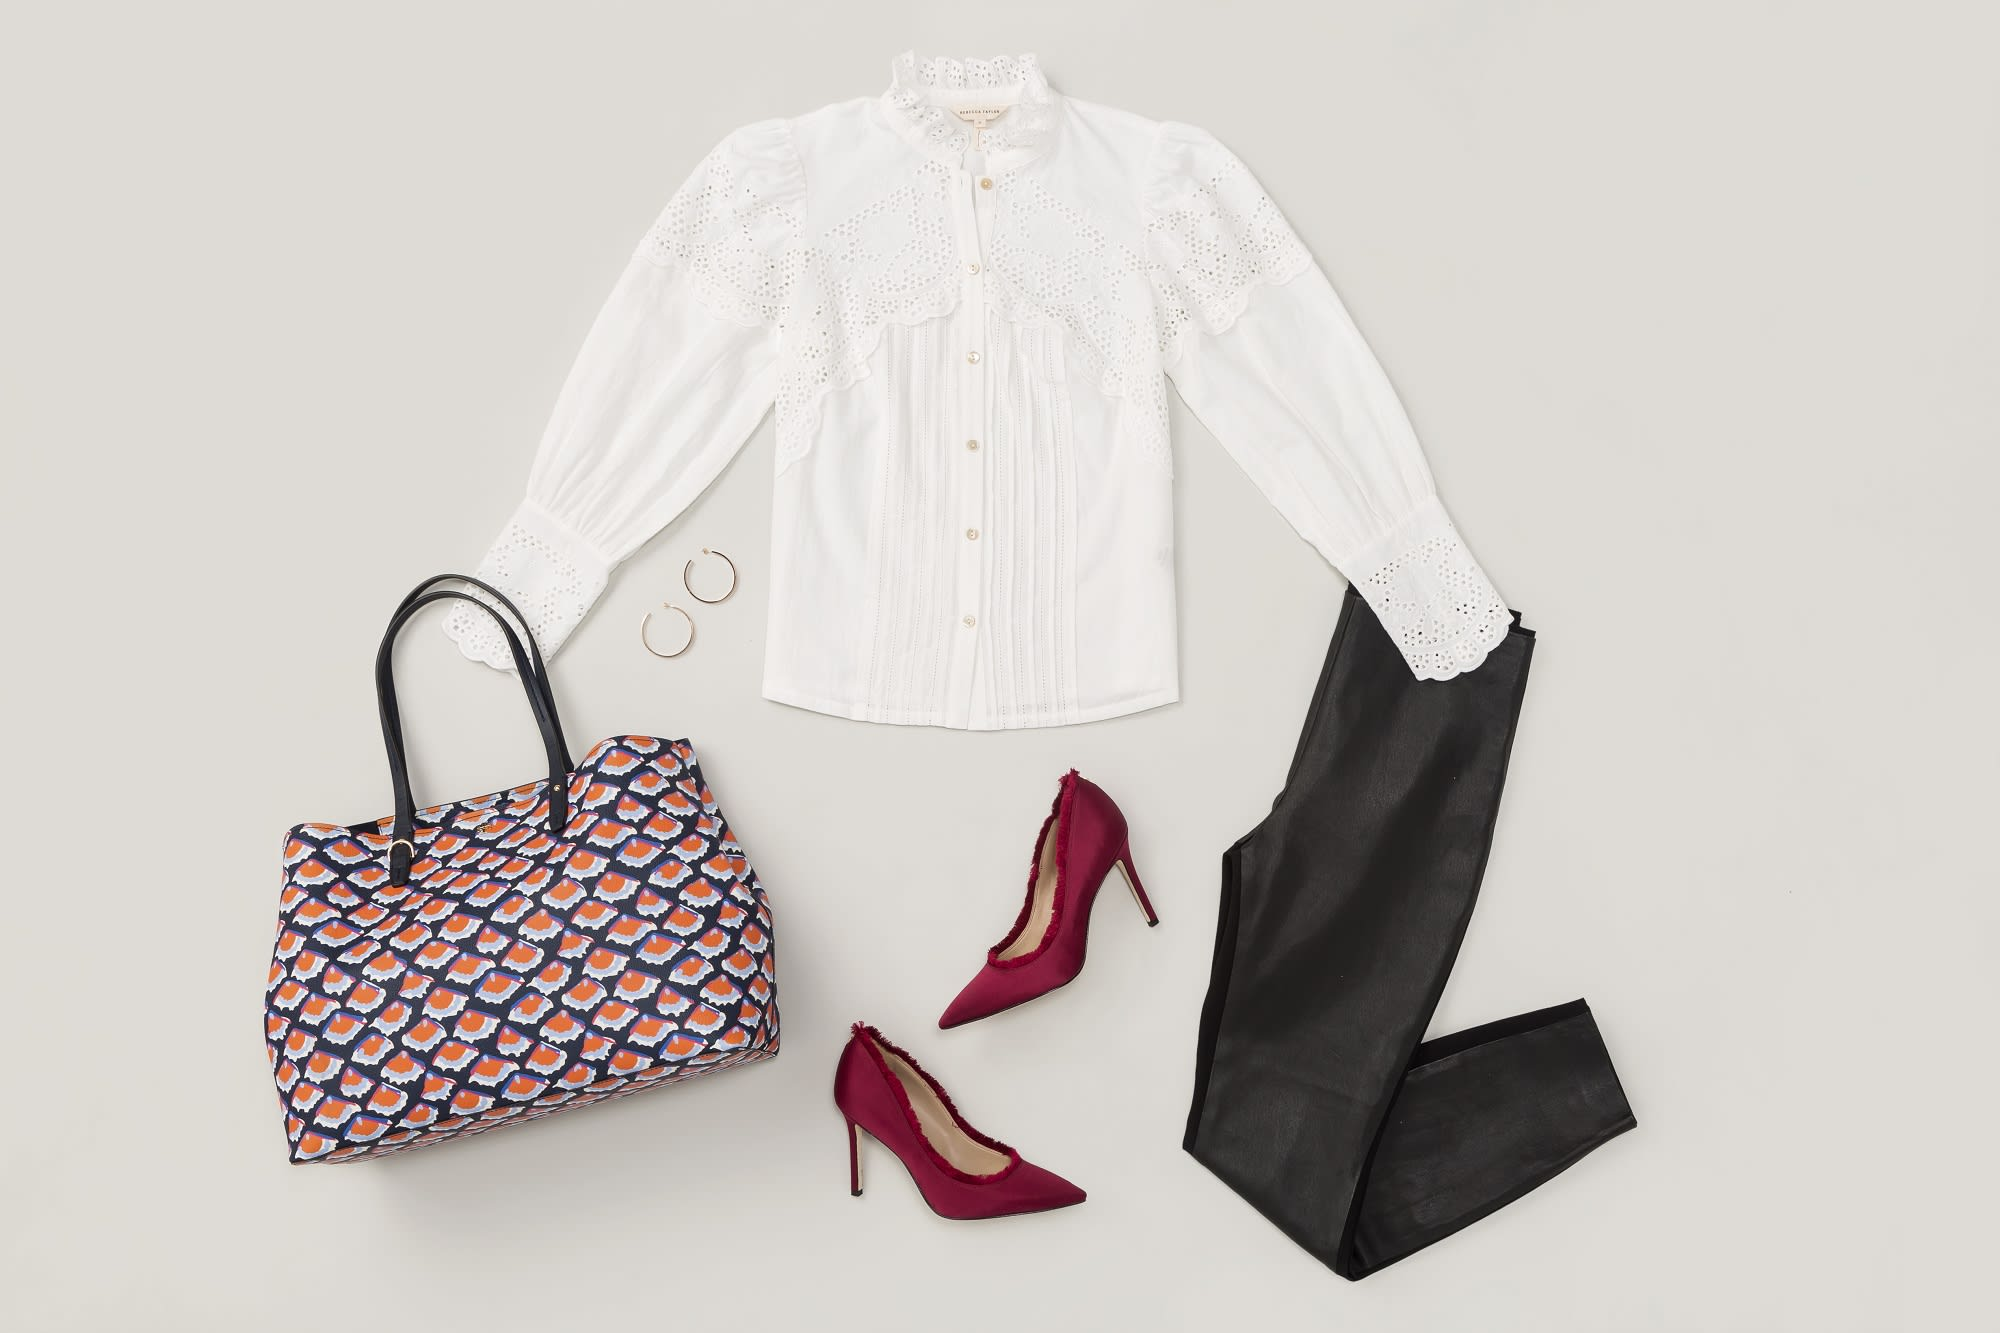 ae6b4f564e6e 7 stylish outfits to wear to your office holiday party